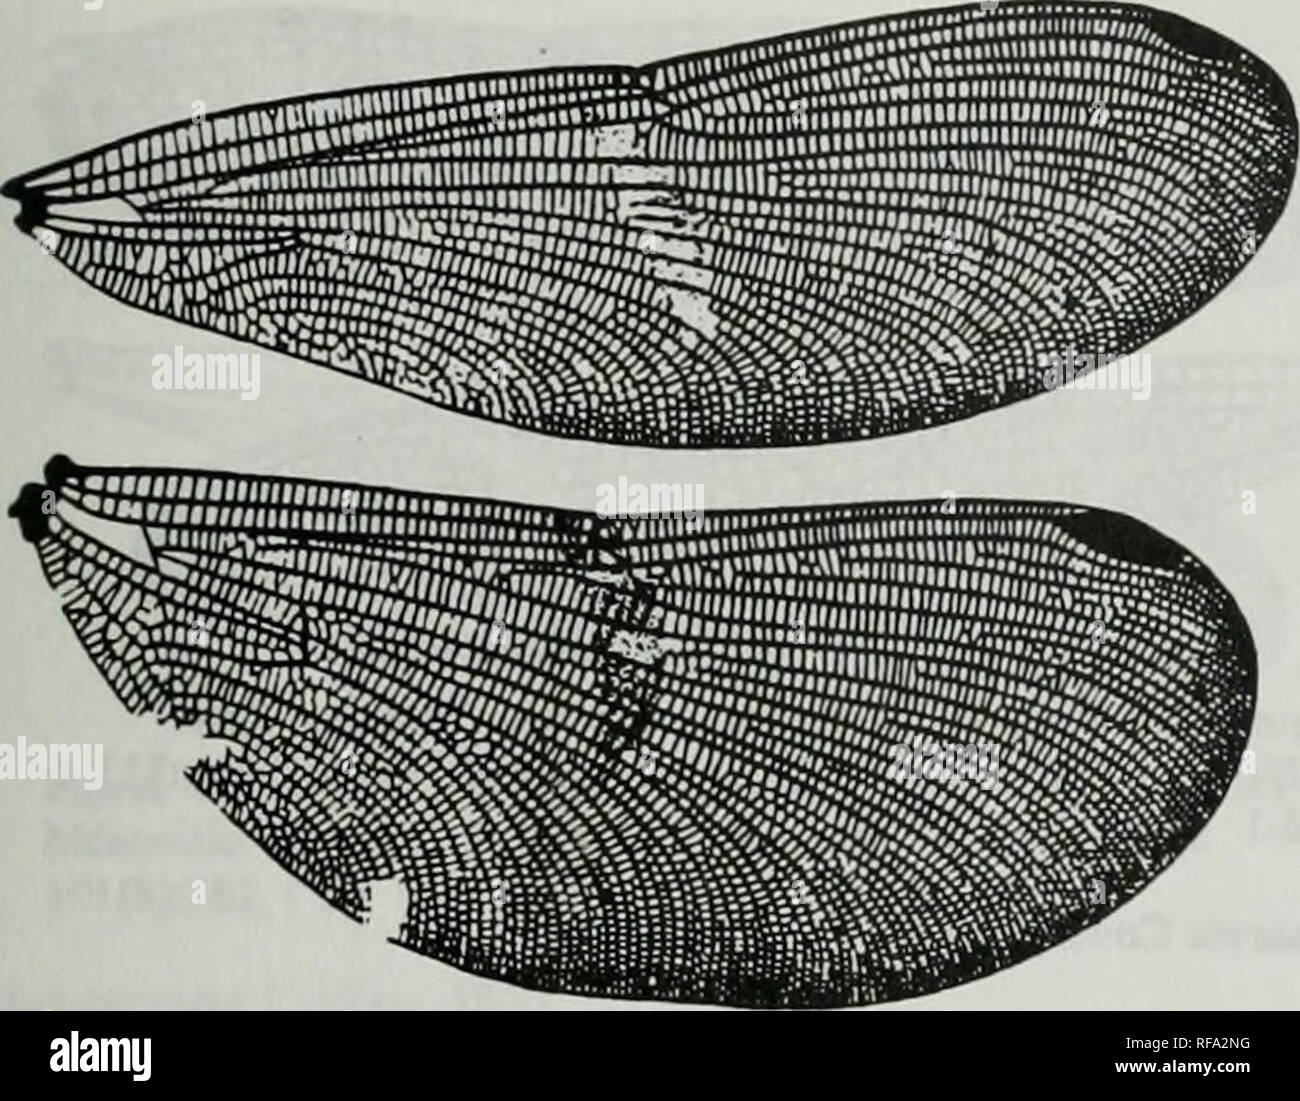 . Catalogue of the family-group, genus-group and species-group names of the Odonata of the world. Odonata; Odonata; Dragonflies; Dragonflies; Damselflies; Damselflies. Figures xm.5 Zyg:Cal:Cal:Calopteryginae (continued) SaphoSelys, 1853. Hgure 34. Wings of Sapho gloriosa MaLachlan (as Selys name). After Belyshev &. Haritonov, 1978. Detenniner of DiagonfUes :312. f246 [b069S] Umma Kirby, 1890. Please note that these images are extracted from scanned page images that may have been digitally enhanced for readability - coloration and appearance of these illustrations may not perfectly resemble - Stock Image